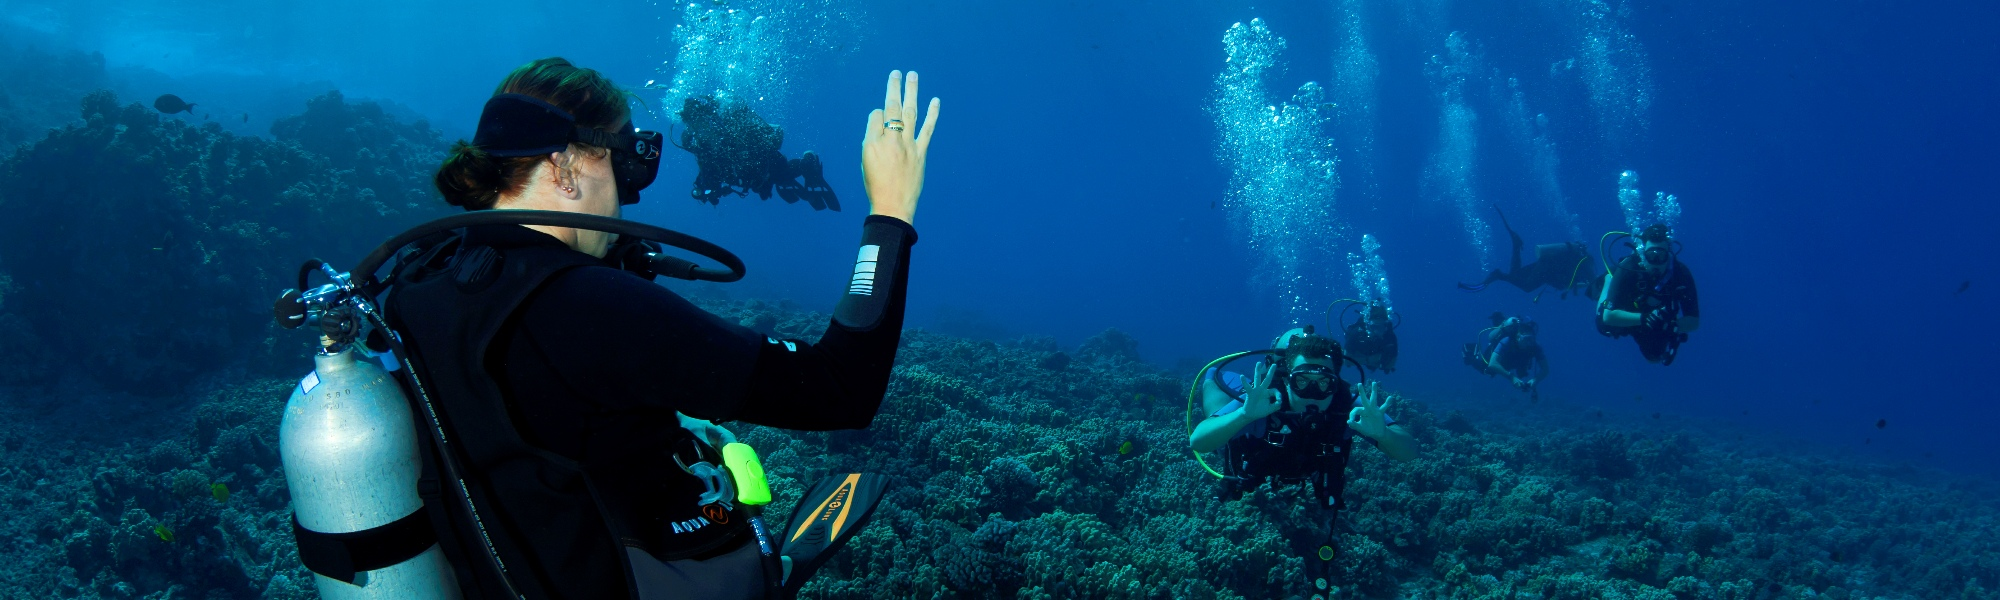 Try Scuba Diving in Wailea